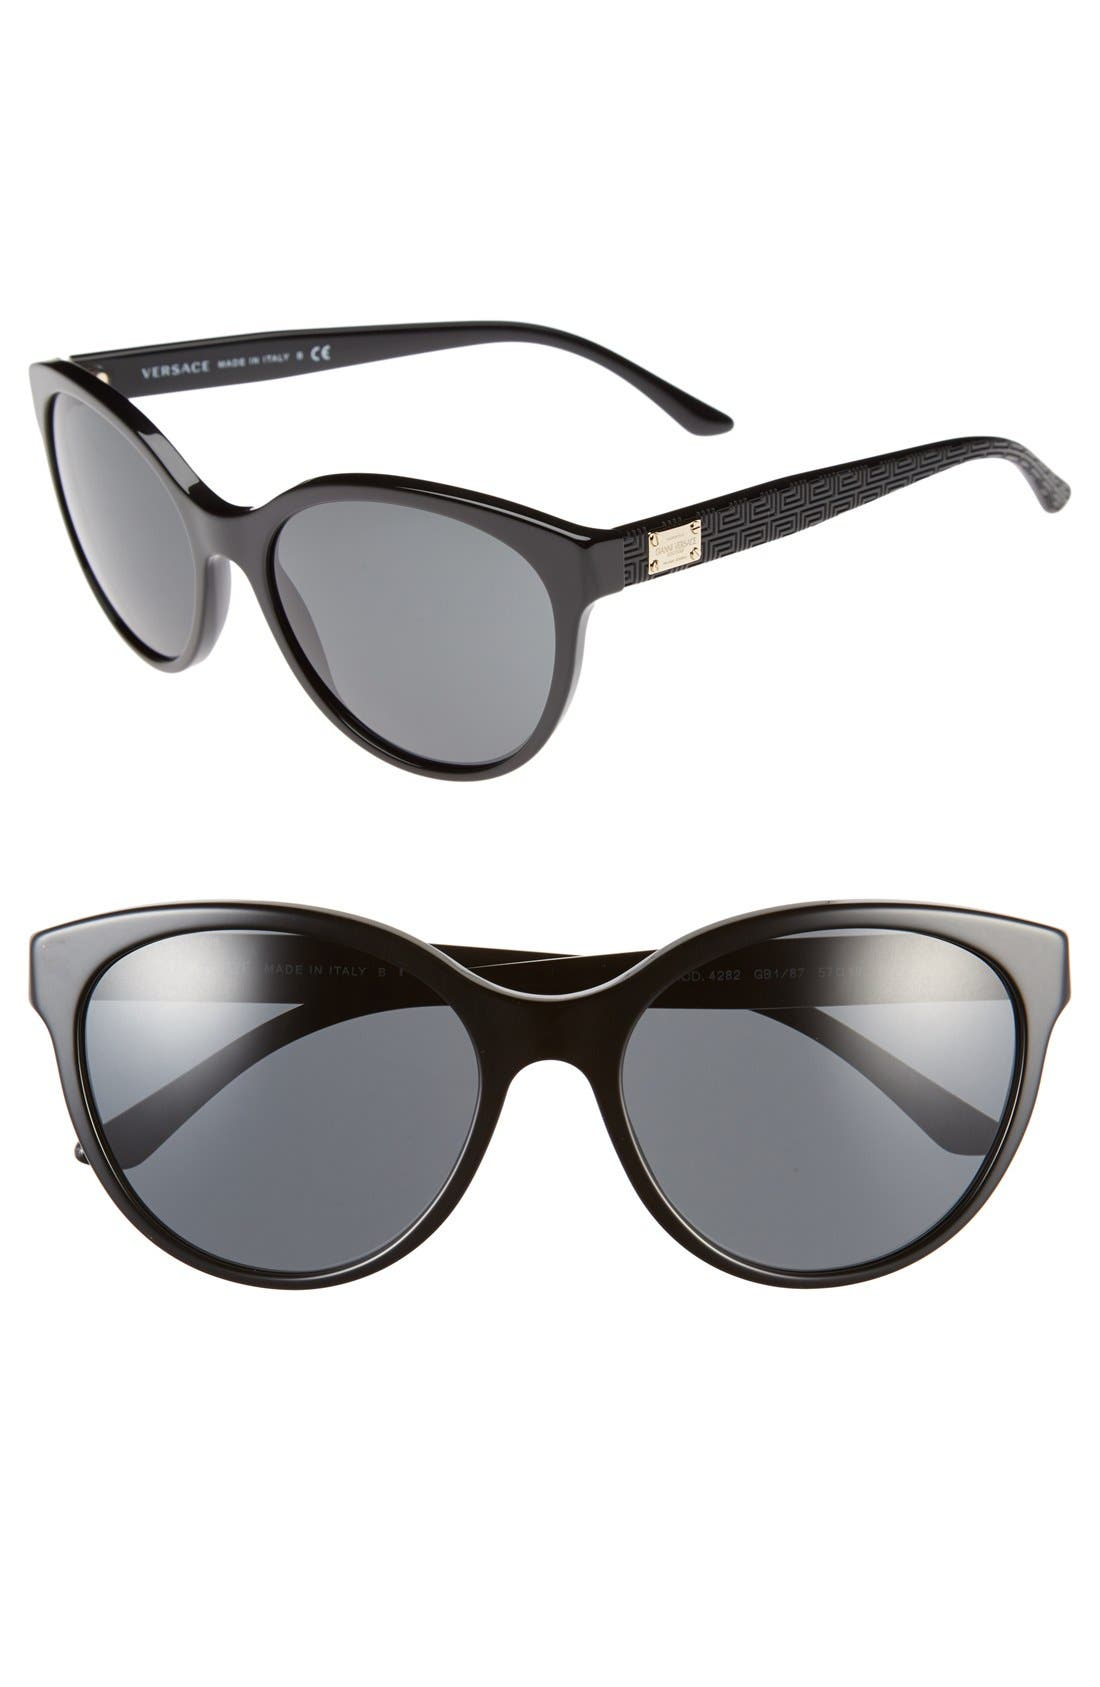 Main Image - Versace 57mm Retro Sunglasses